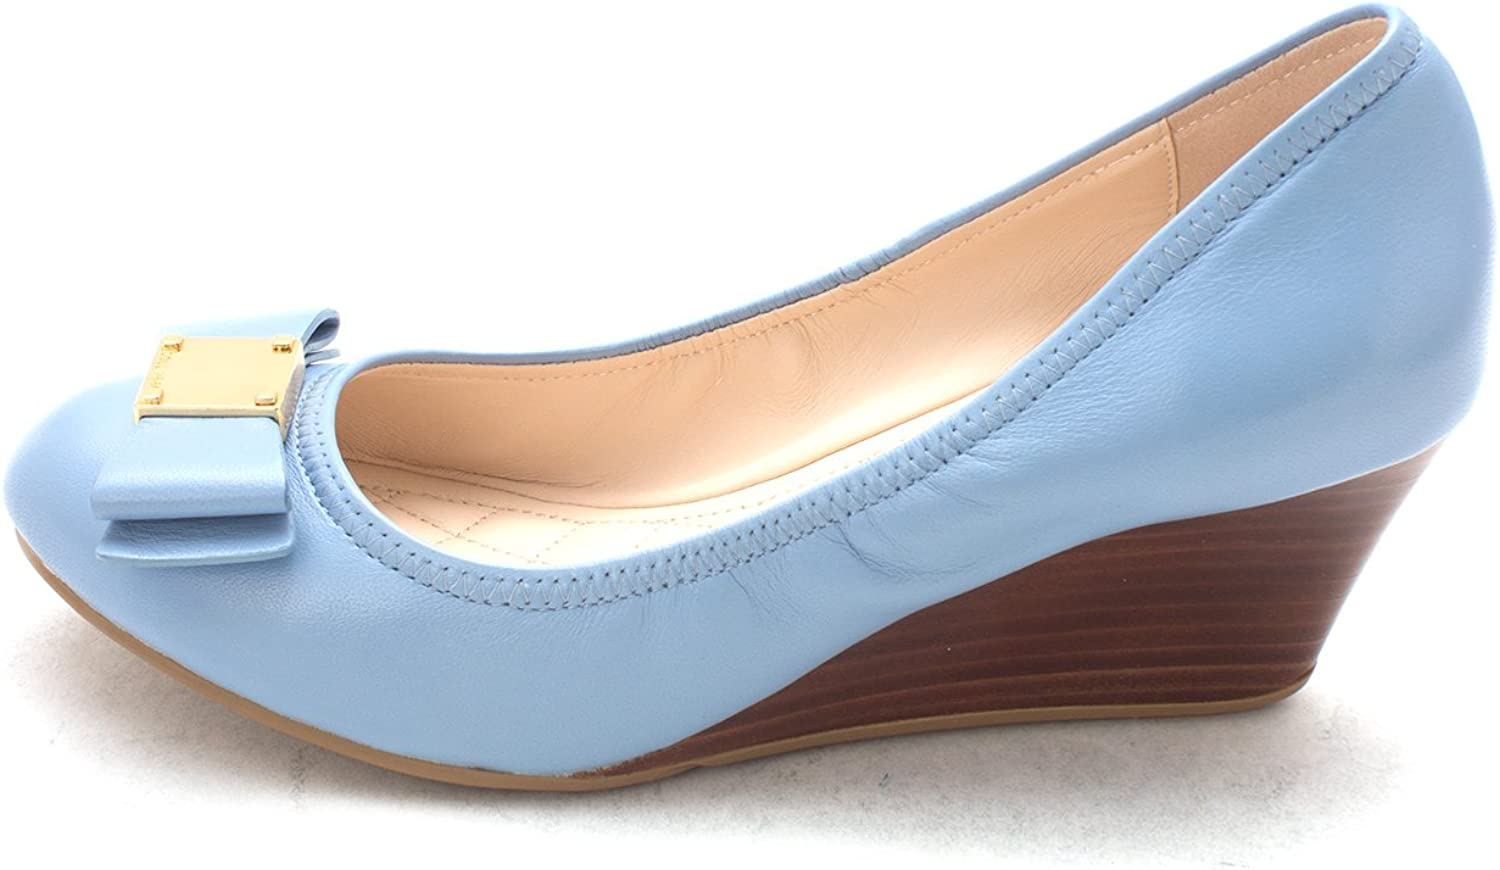 Cole Haan Womens 14A4337 Closed Toe Wedge Pumps